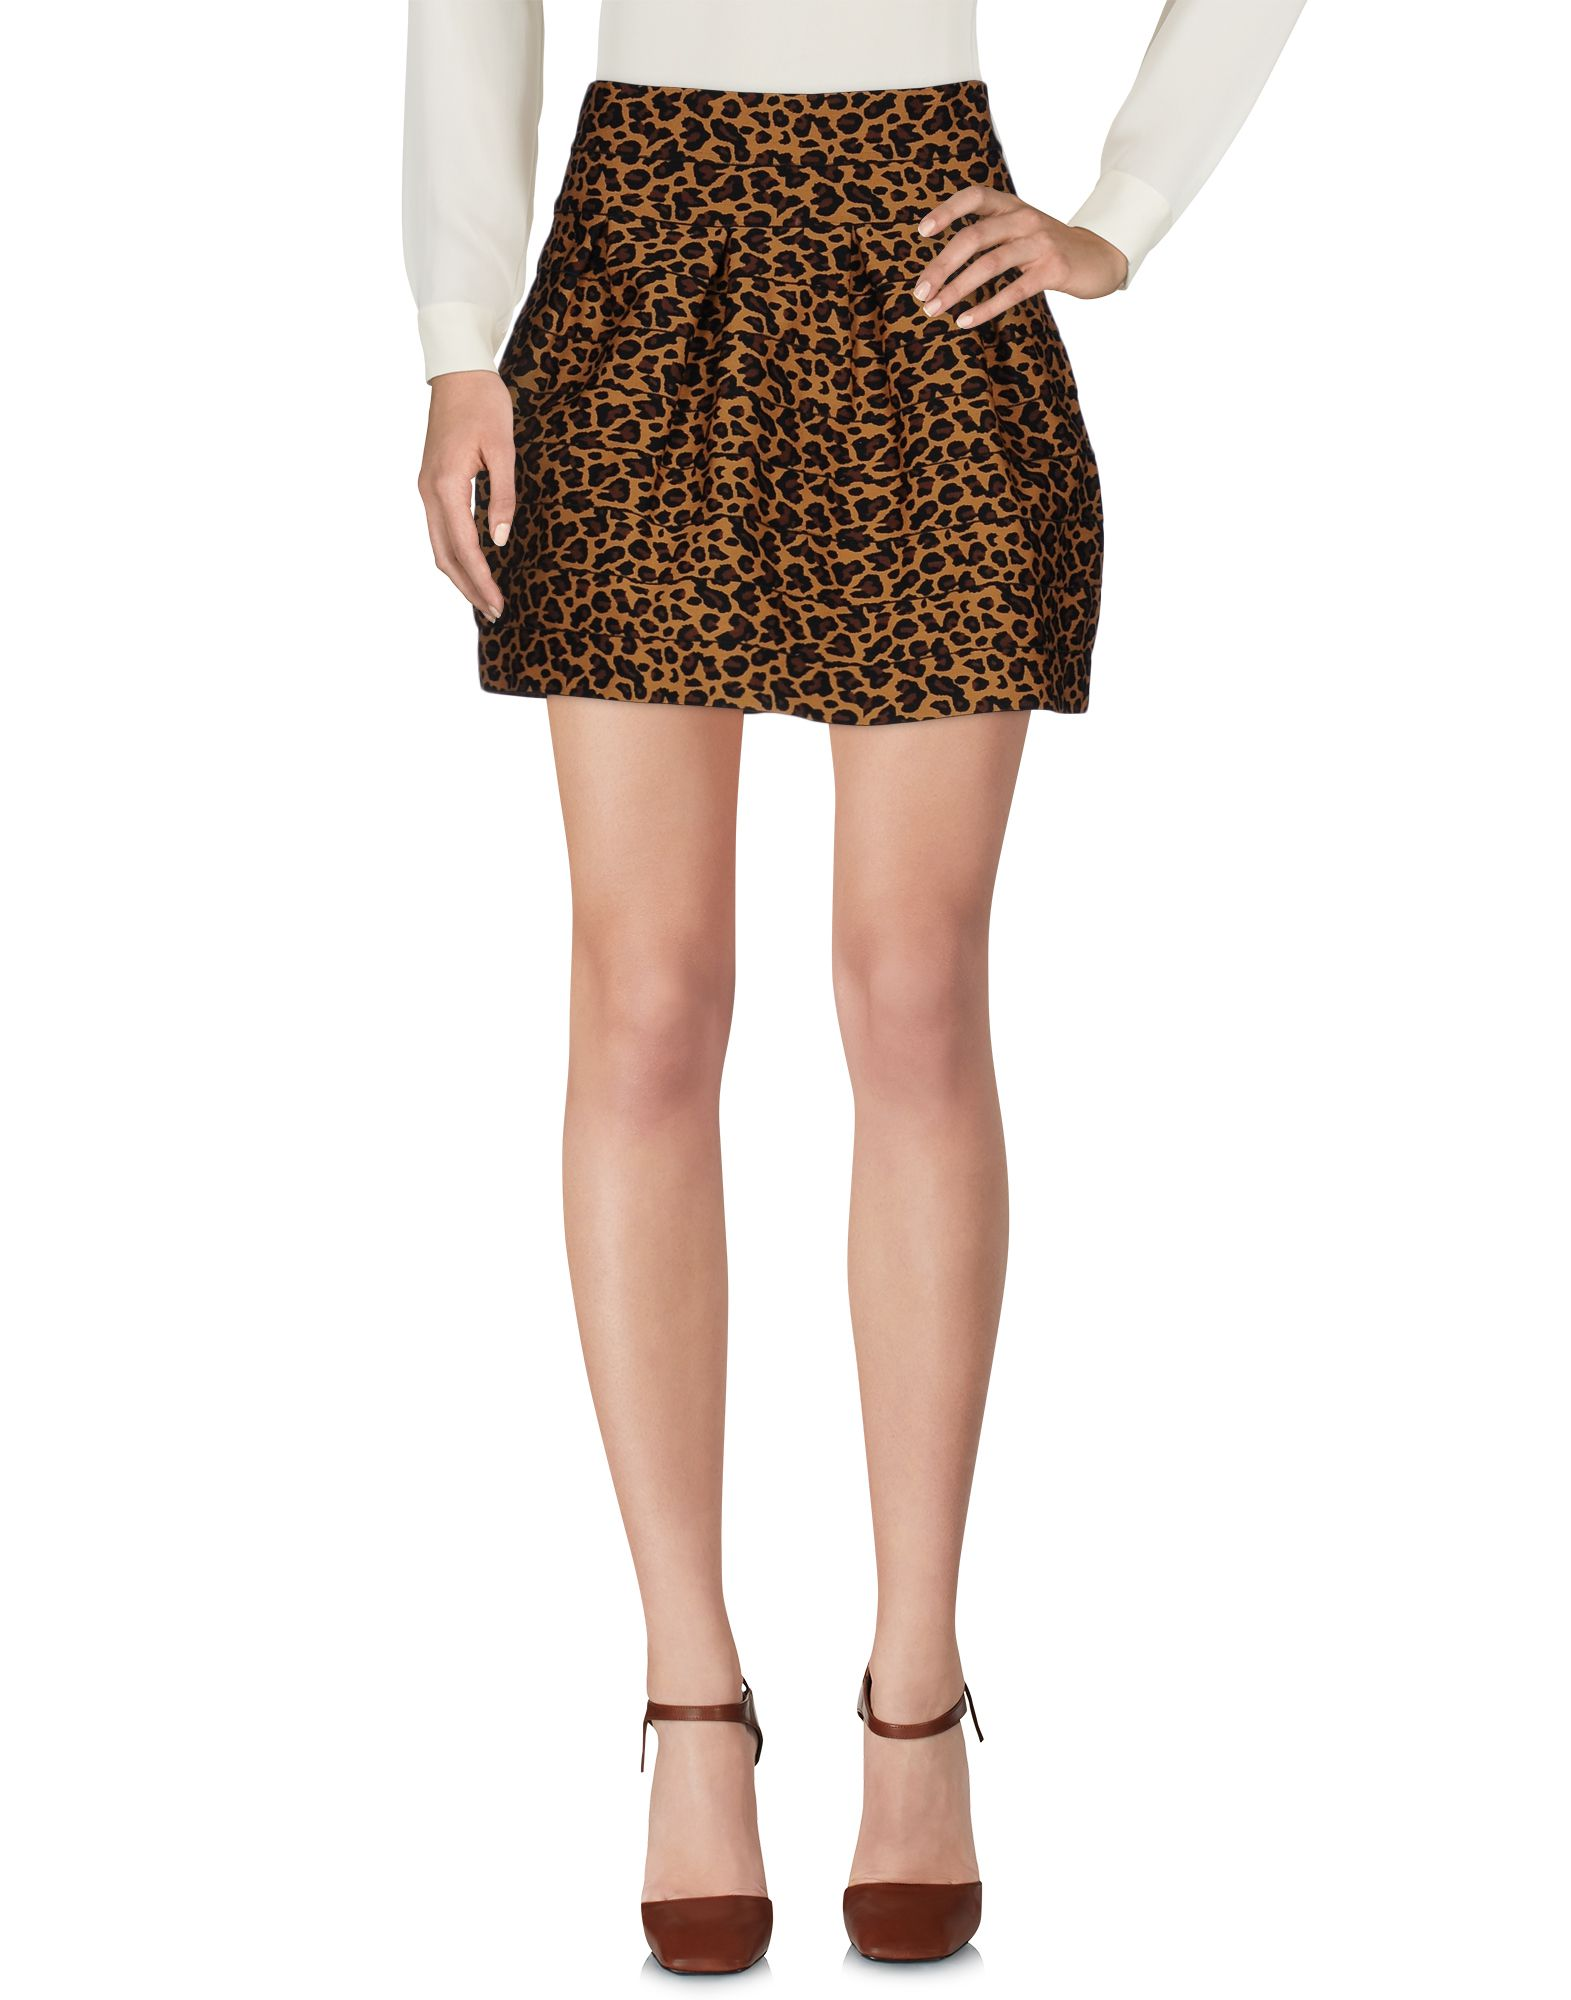 Lm lulu short dresses shop at ebates for Robe lm lulu